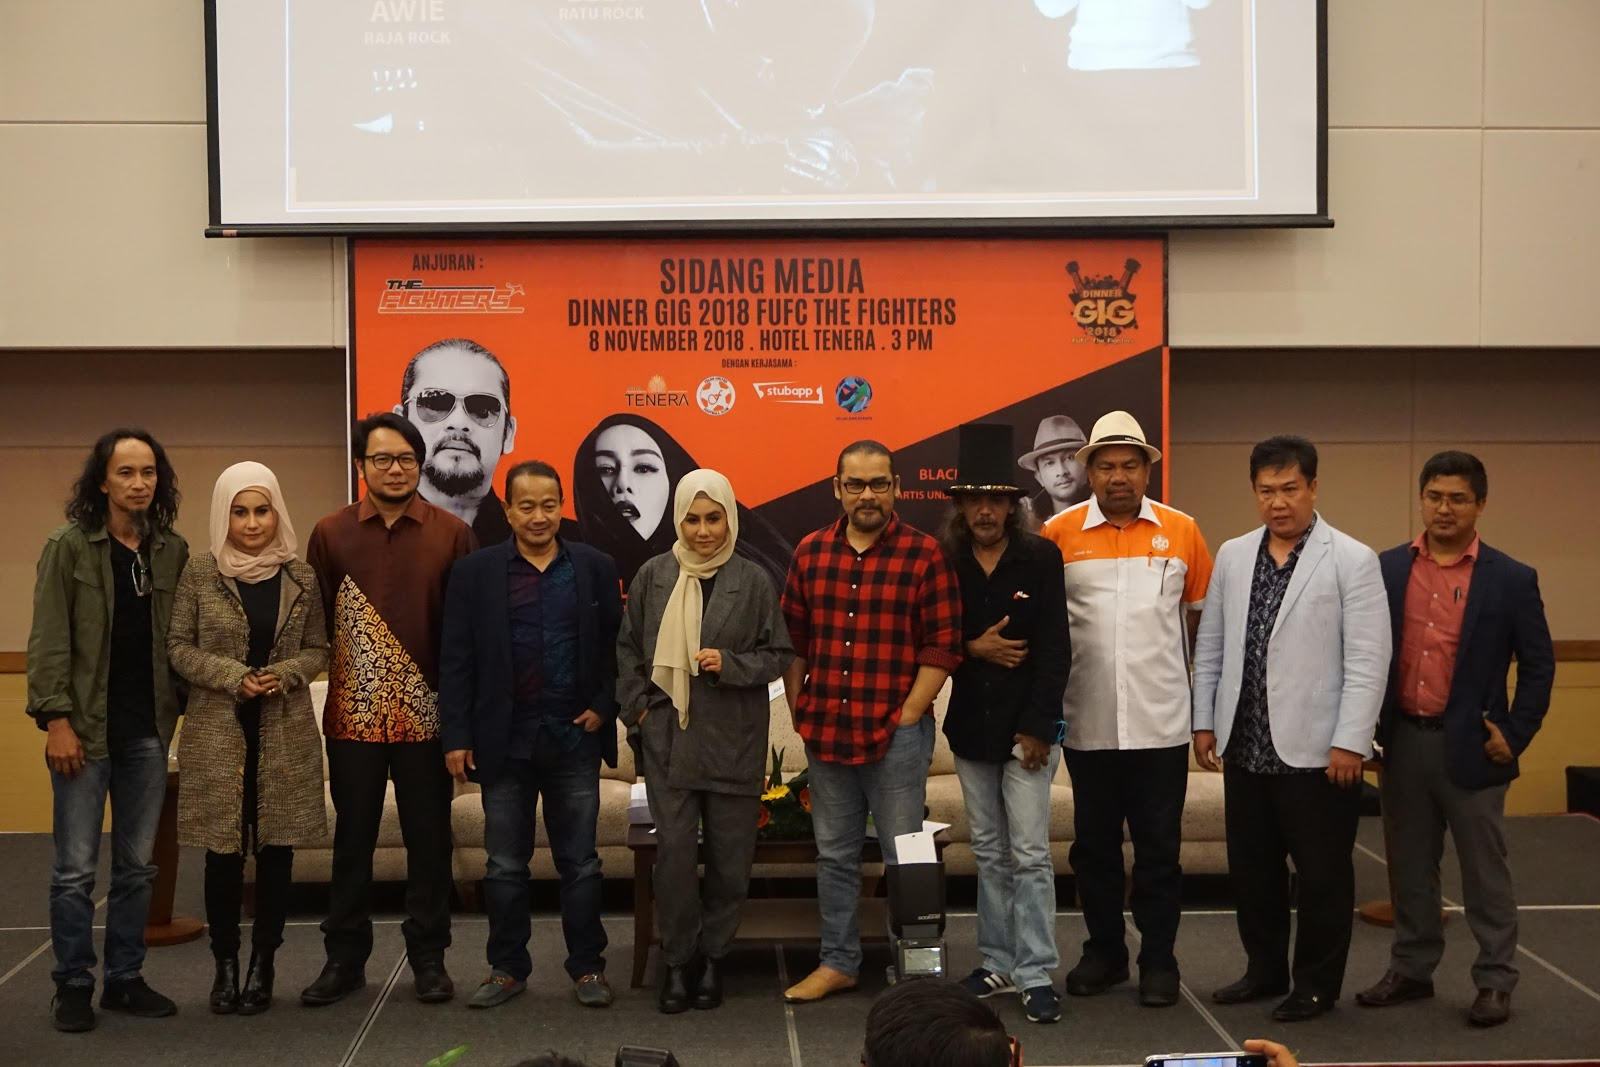 DATO' AWIE, DINNER GIG 2018 FUFC THE FIGHTERS, ELLA, MUZIK, PERSEMBAHAN MUZIK,